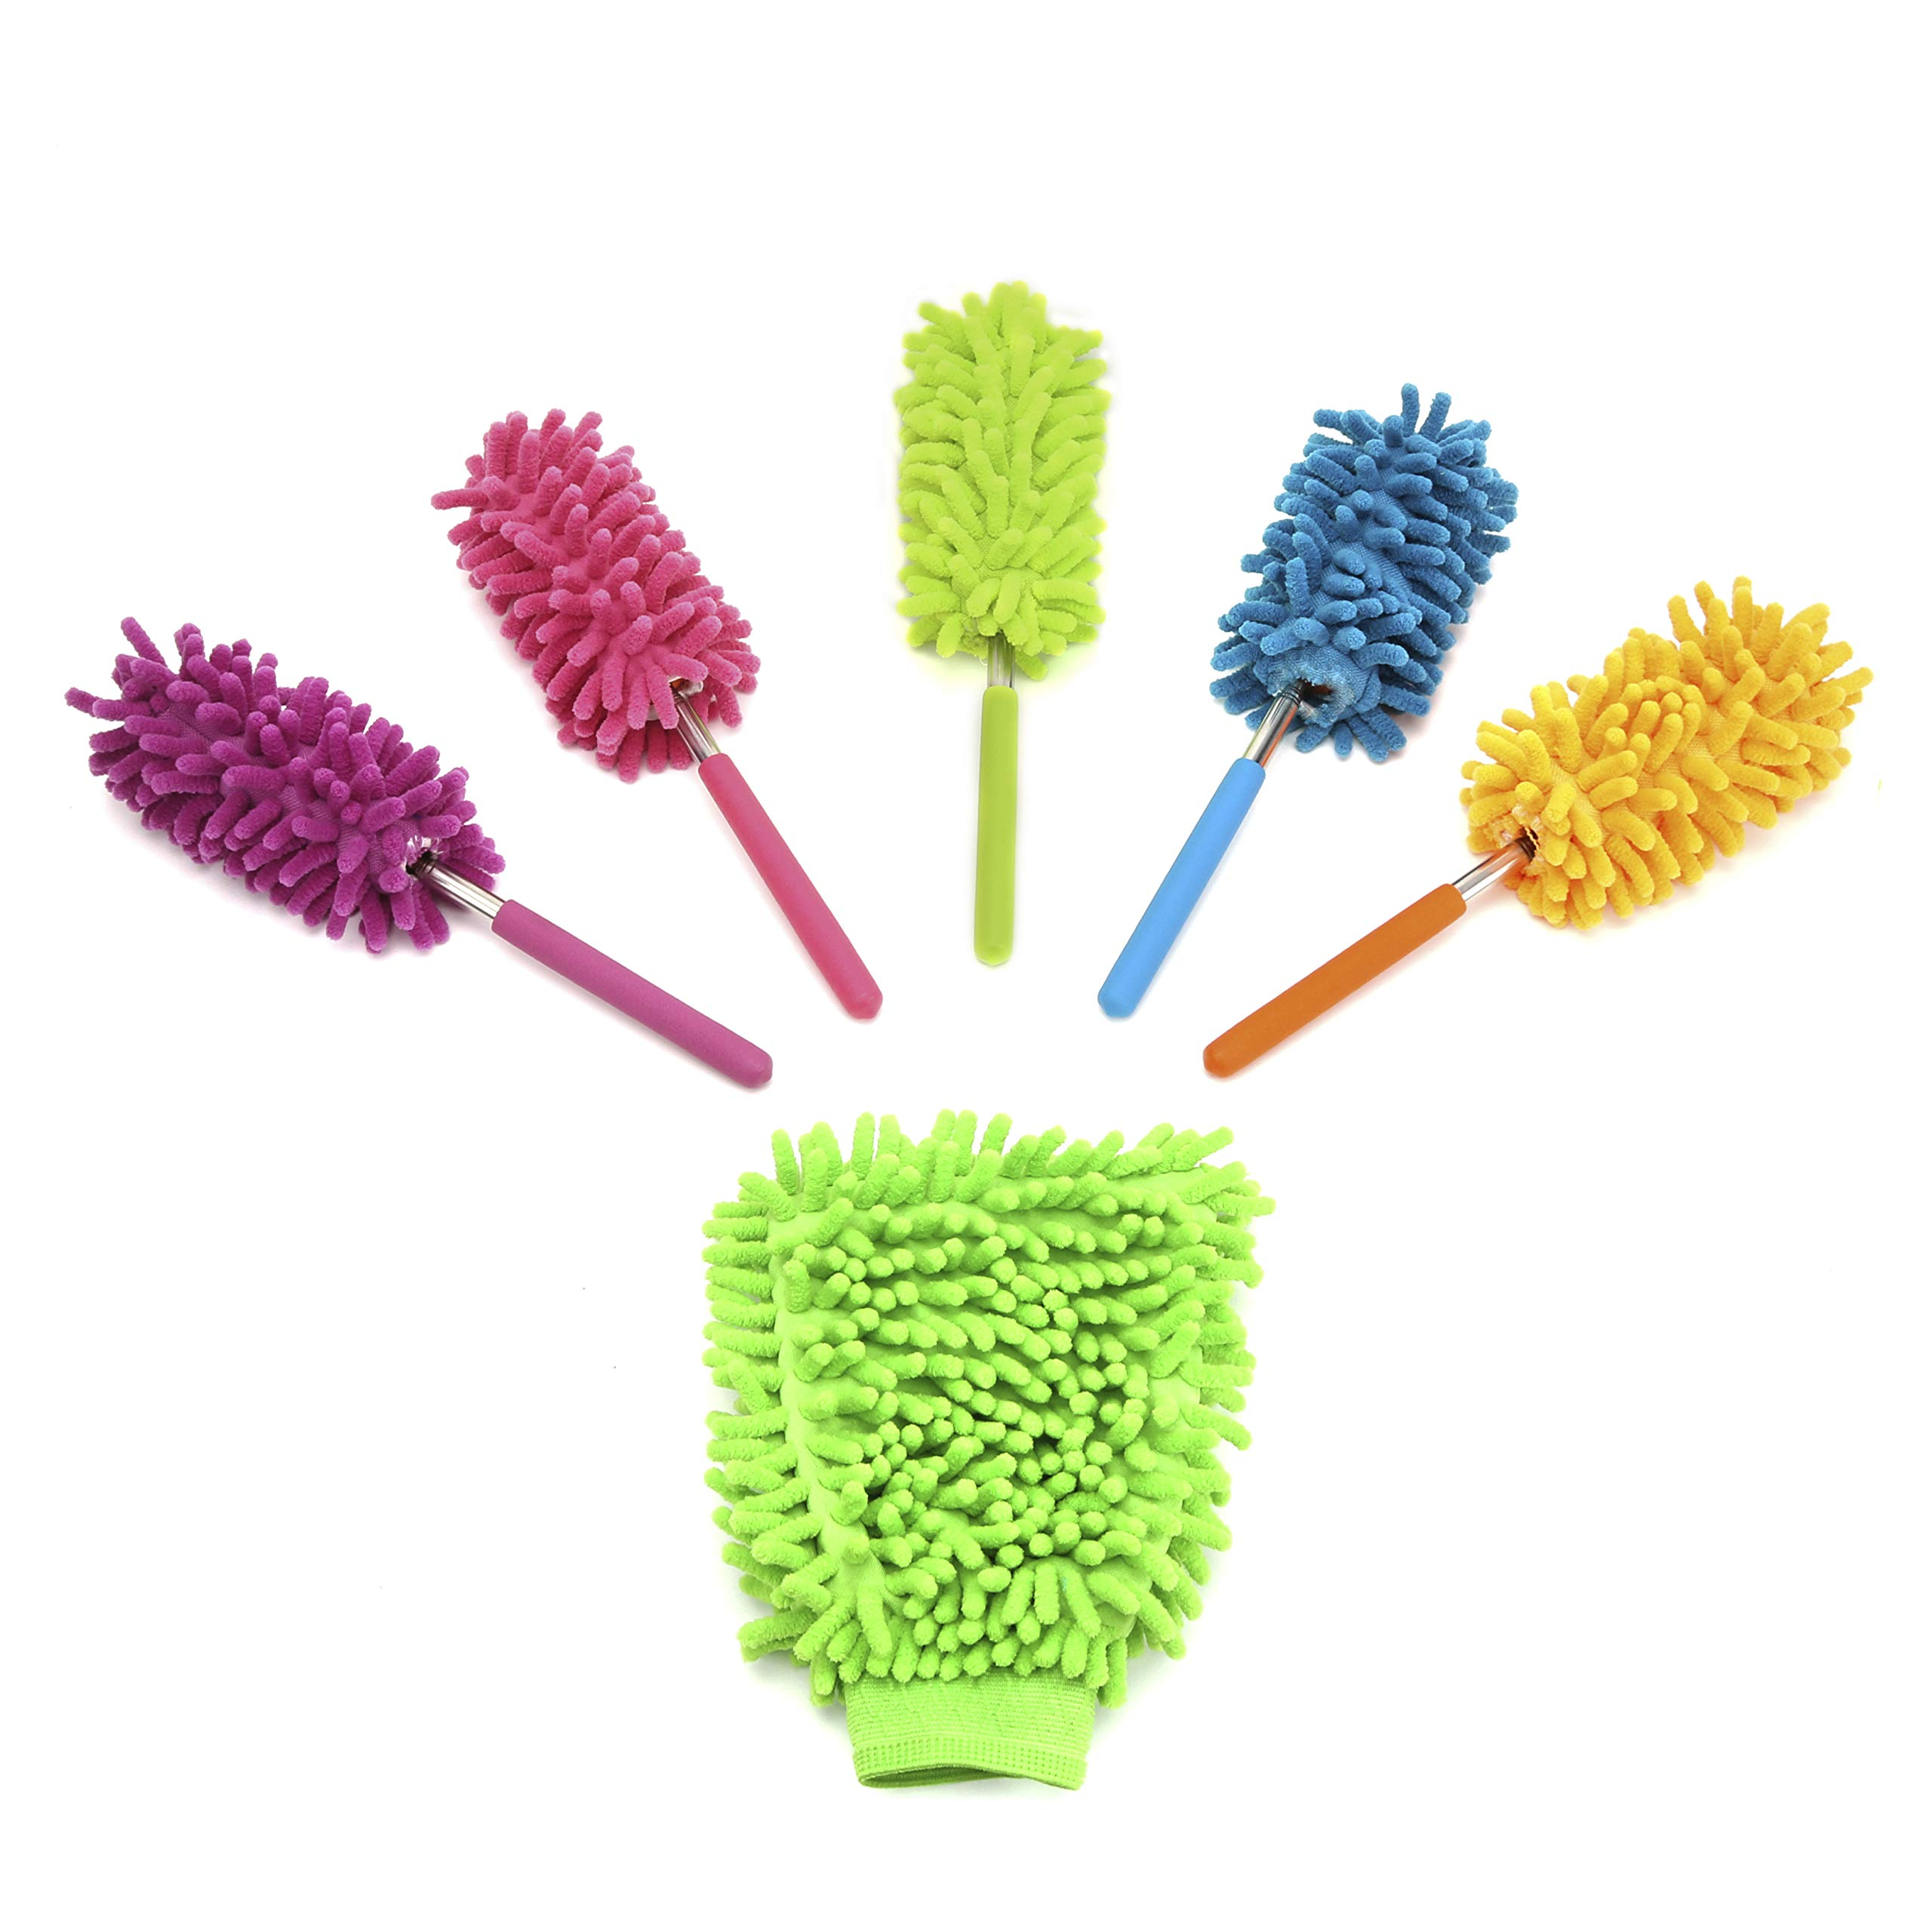 GreenPeaceLove Extendable Long-reach Microfiber Dusters w Telescoping Pole ( Pack of 5 )  Bendable Washable Dusting Brush + 1 (Random color) Mitt for Home Kitchen Cleaning